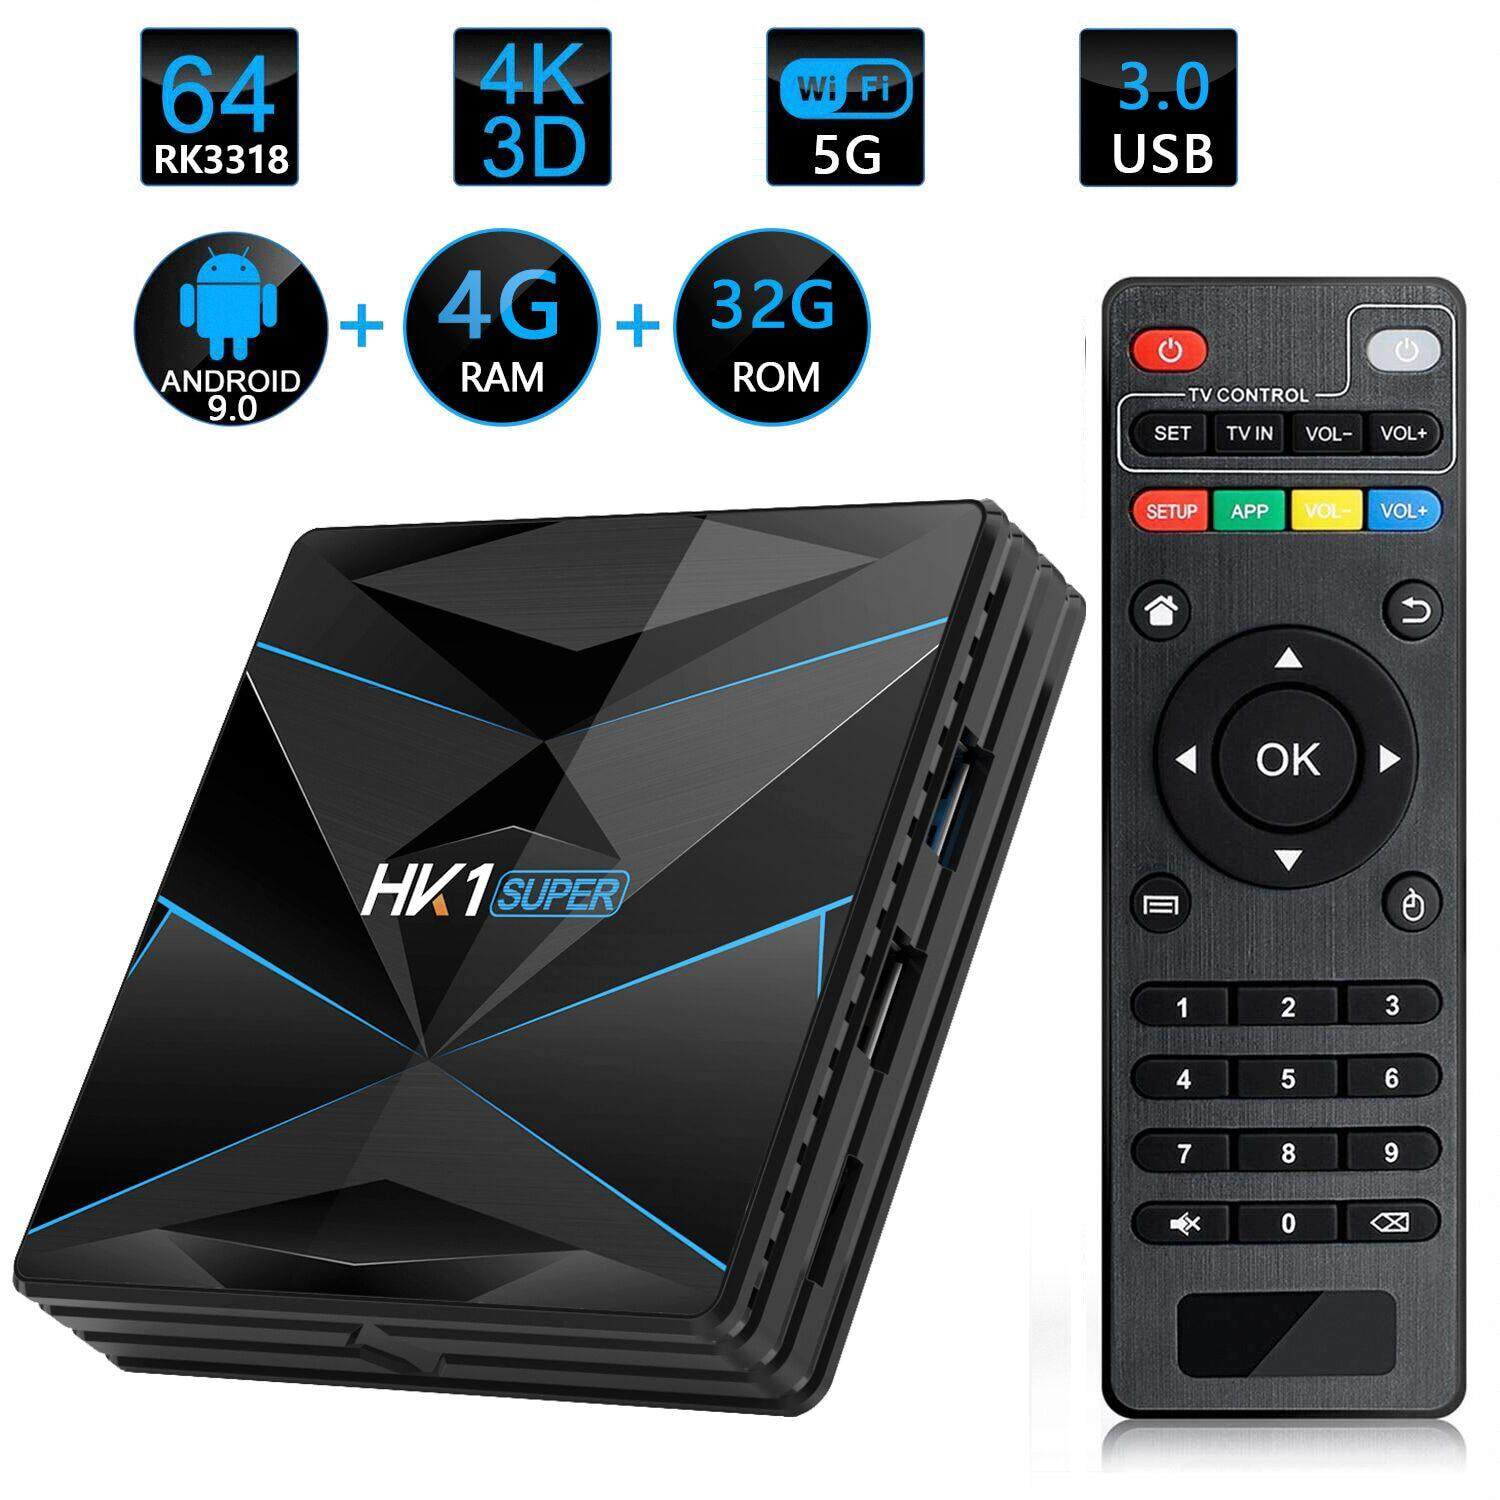 ยี่ห้อไหนดี  ปัตตานี 【HK1 Super】 Android 9 0 Smart TV BOX Google asistente RK3318 4K 3D Ultra HD 4G 64G TV wifi Play Store Apps gratis rápido Set top Box